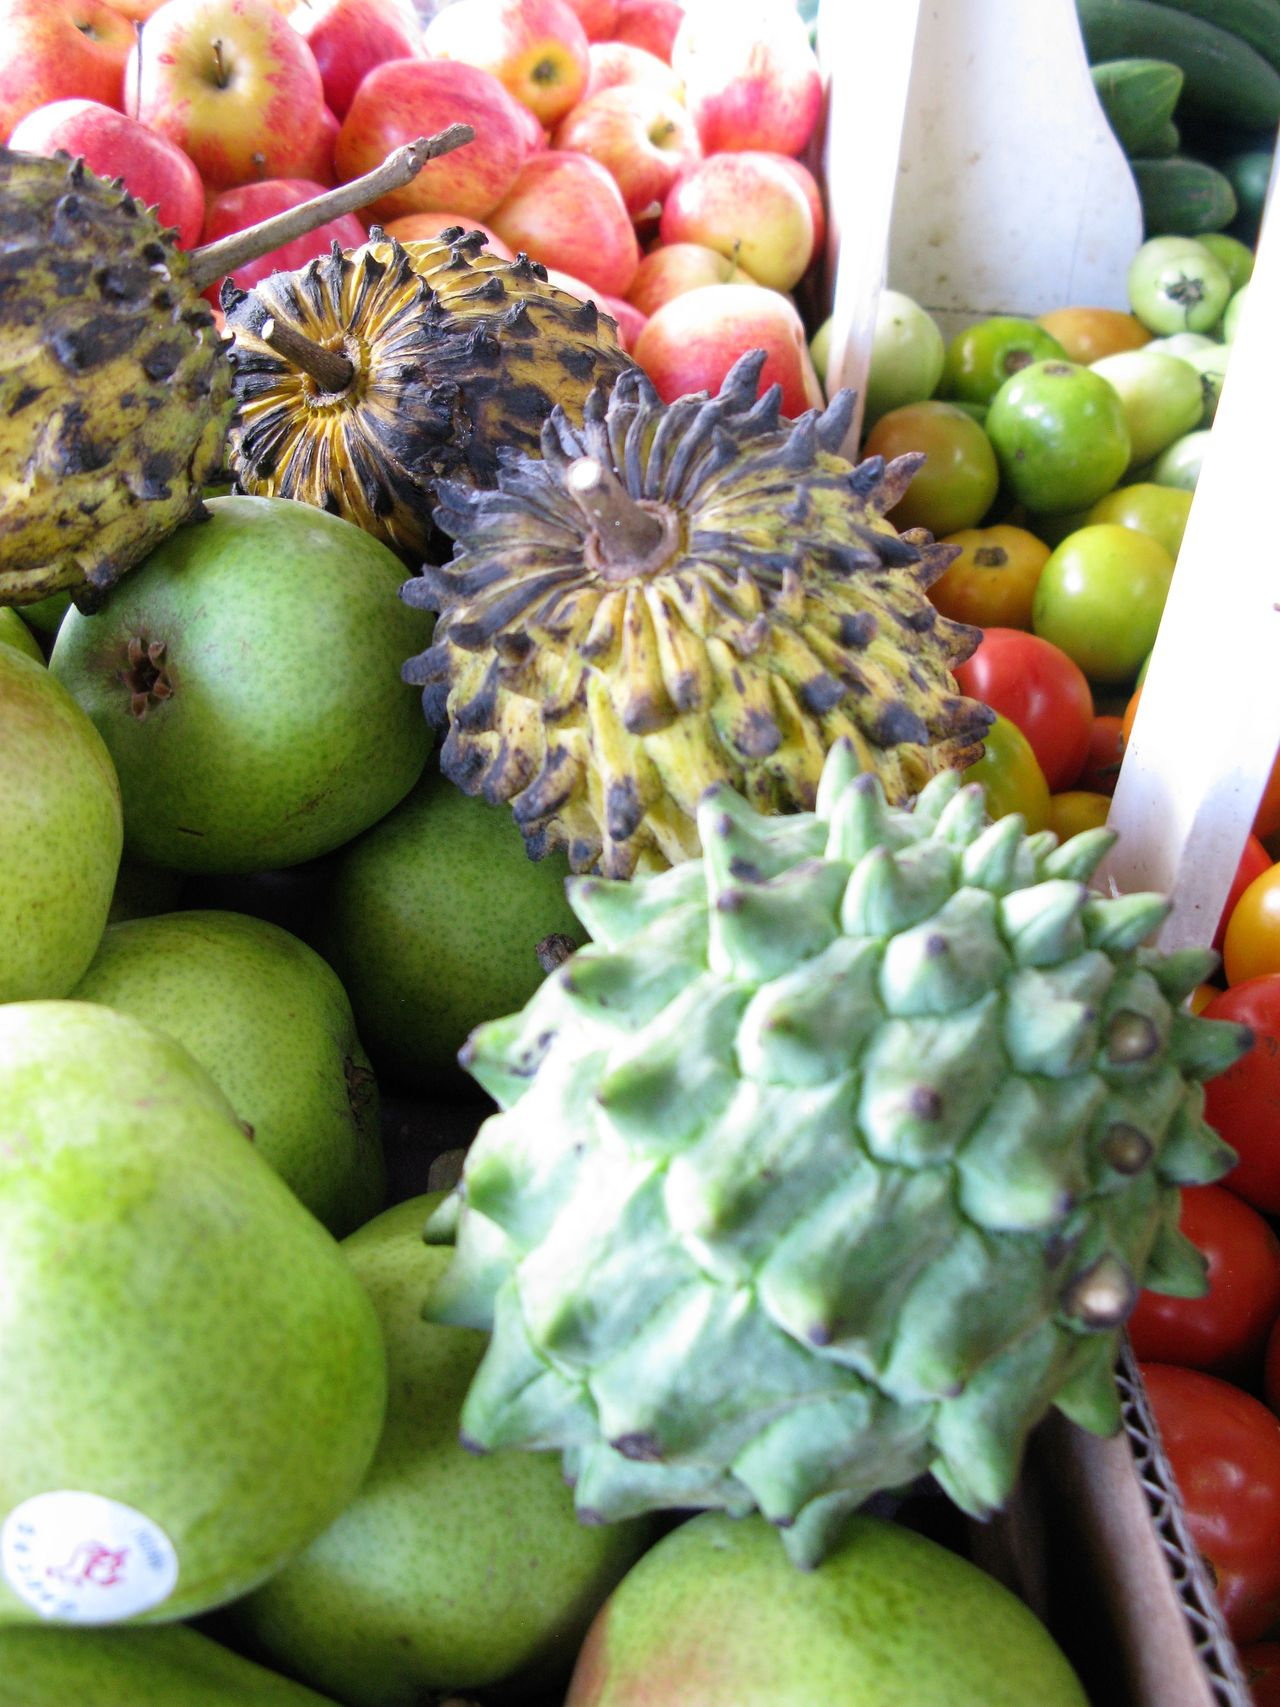 Close-up Day Exotic Fruits Food Food And Drink Freshness Fruit Fruit Stall Healthy Eating Market Stall No People Outdoors Variation